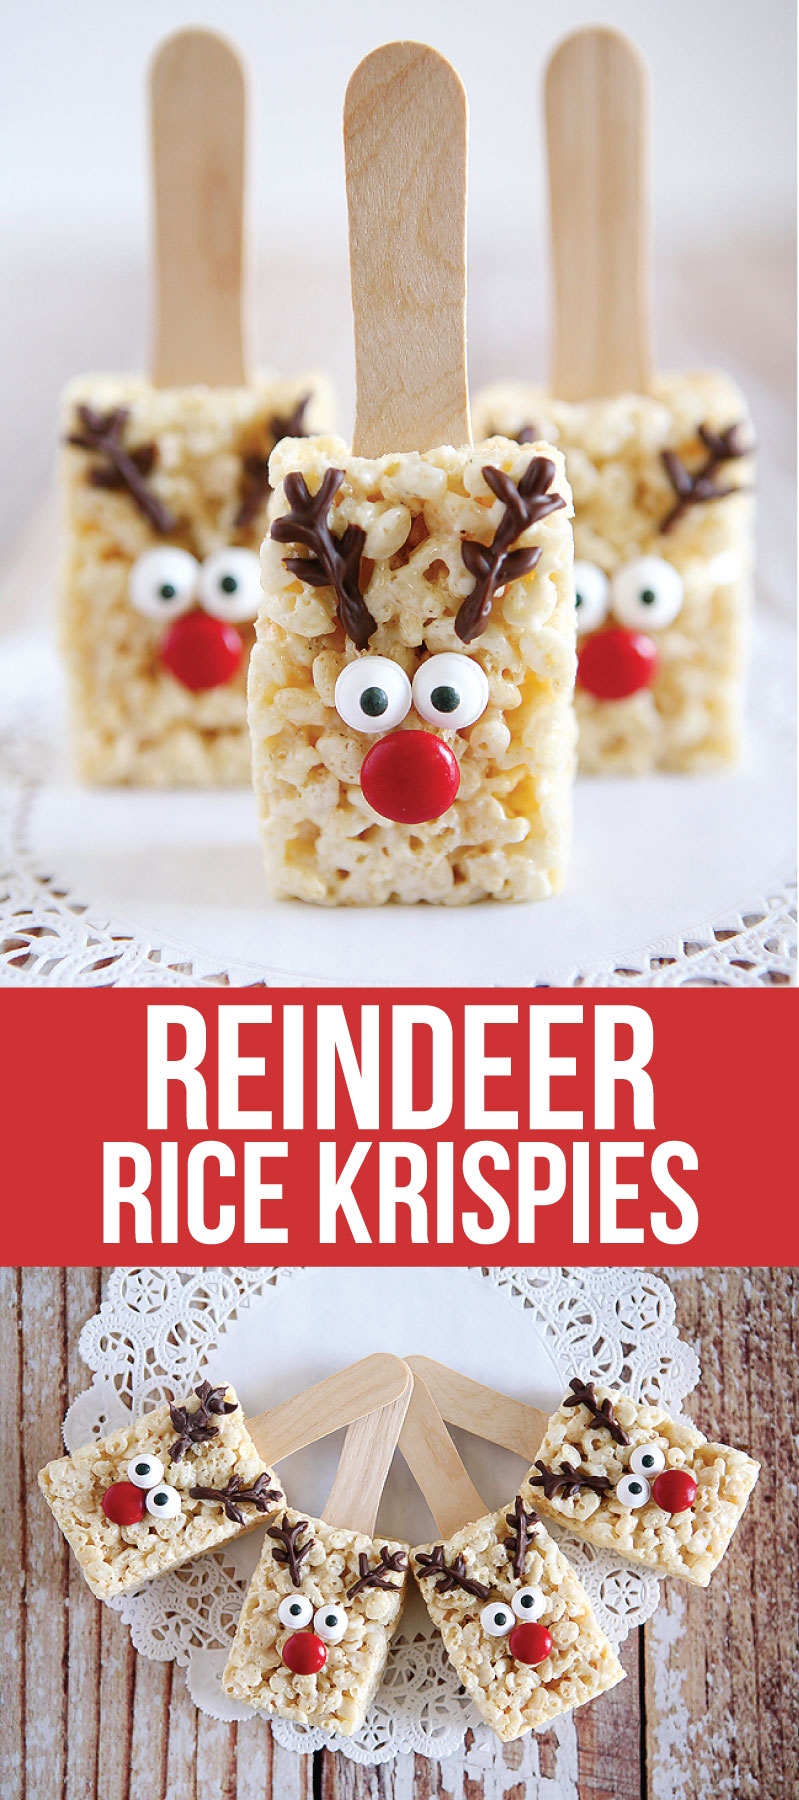 Holidays: Reindeer Rice Krispies - the cutest treat you will see all Christmas season. Make this recipe and deliver them to family and friends!